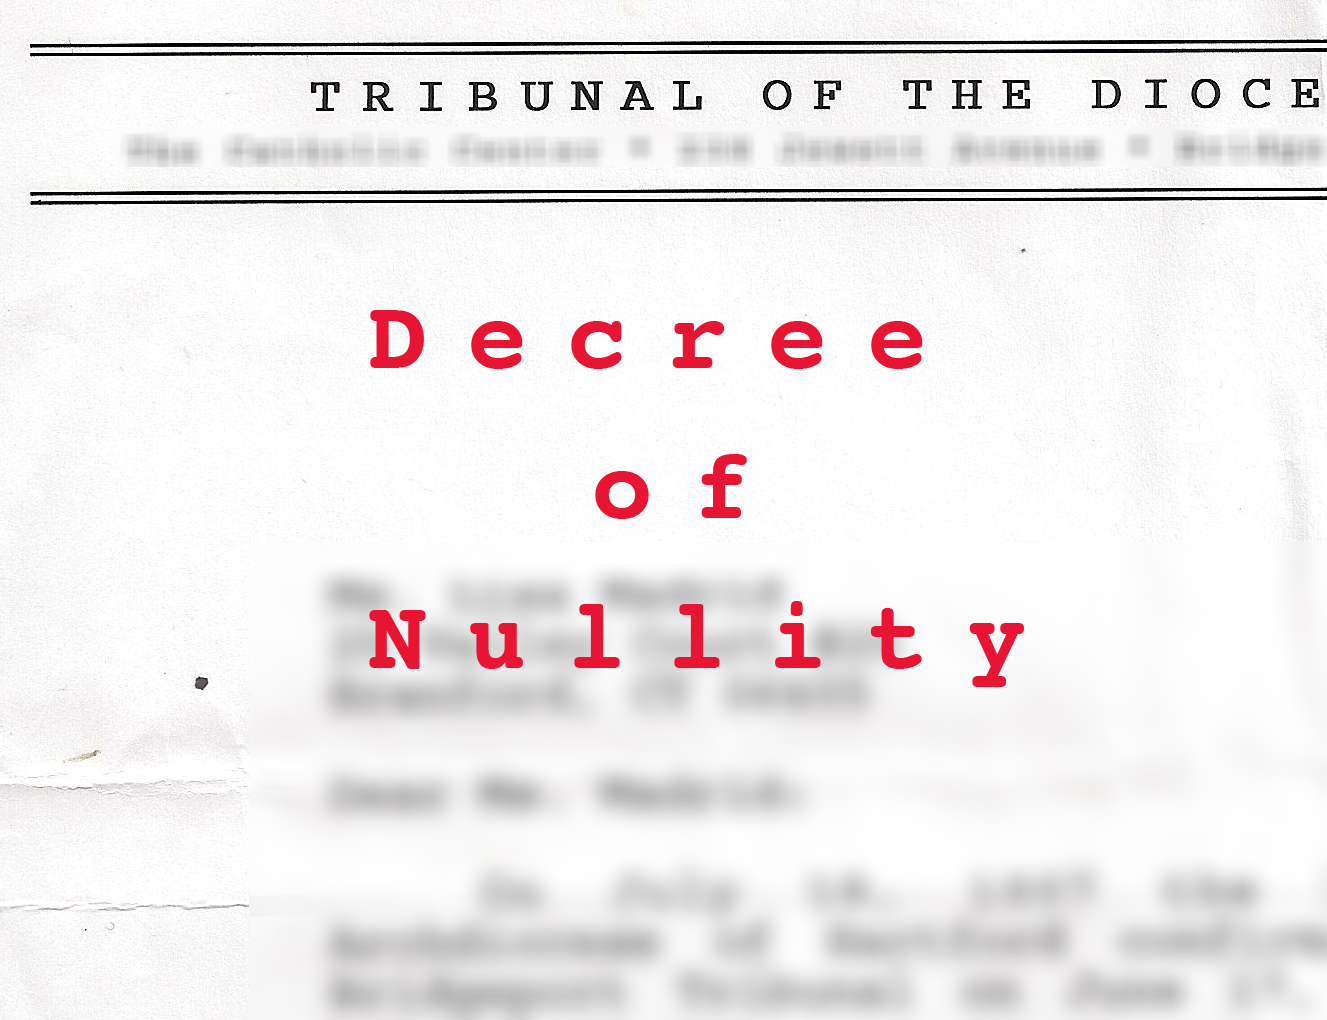 What is a decree of nullity